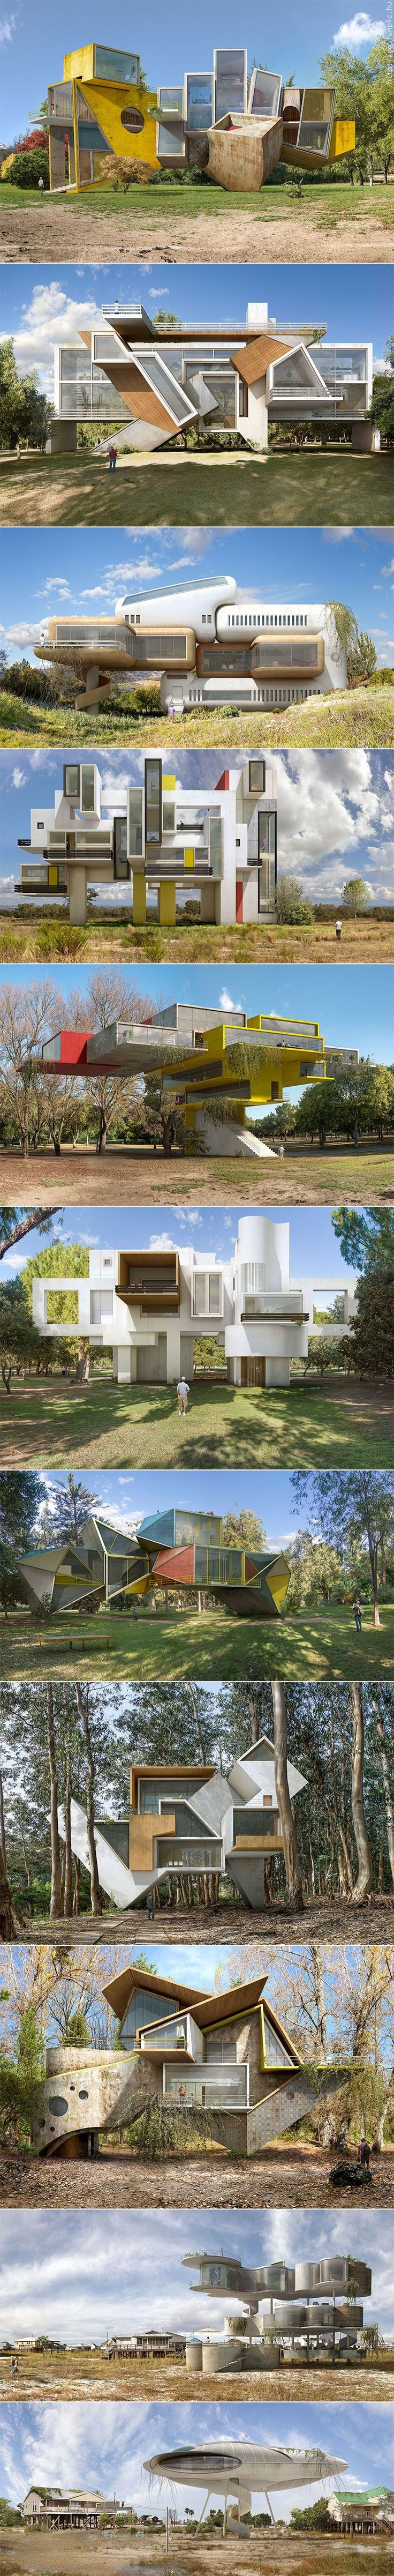 Dionisio Gonzalez Projects' surreal architectural visions